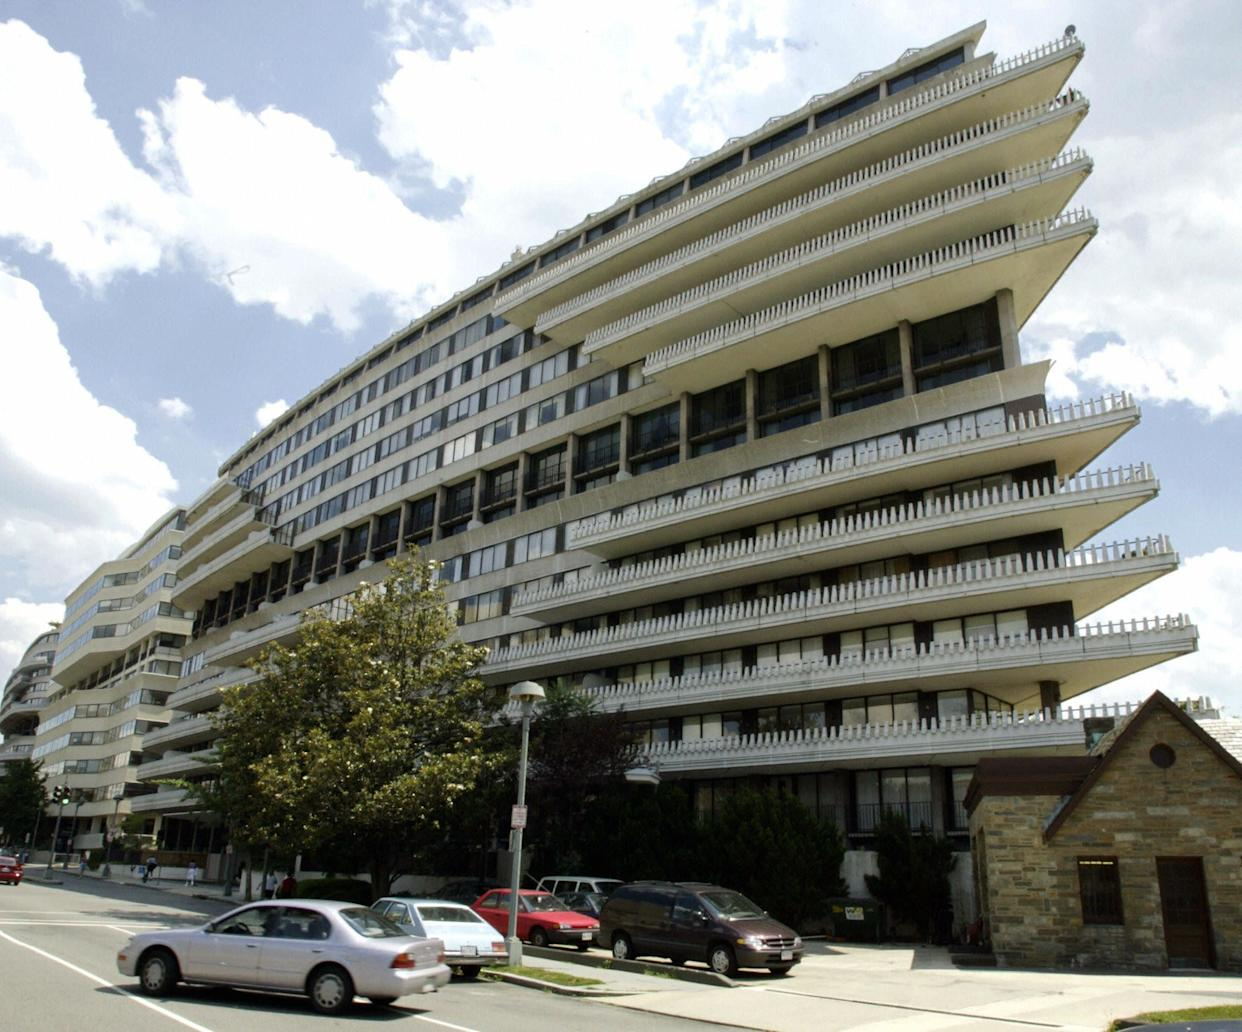 (FILES): This 17 June 2002 file photo shows the Watergate complex in Washington, DC, where in June 1972 burglars used eavesdropping devices to listen in on the Democratic National Committee, sparking the scandal which led to the resignation of US president Richard M. Nixon. Washington Post assistant managing editor Bob Woodward's new book, 'The Secret Man,' has been rushed into publication following the sudden revelation of Deep Throat's identity in April 2005. Woodward was a reporter when his friend, FBI agent Mark Felt, aka Deep Throat, confided government secrets to him in the Watergate scandal that brought down Nixon in 1974. The book is to be released 06 July 2005. AFP PHOTO/Paul J. Richards (Photo credit should read PAUL J. RICHARDS/AFP/GettyImages)